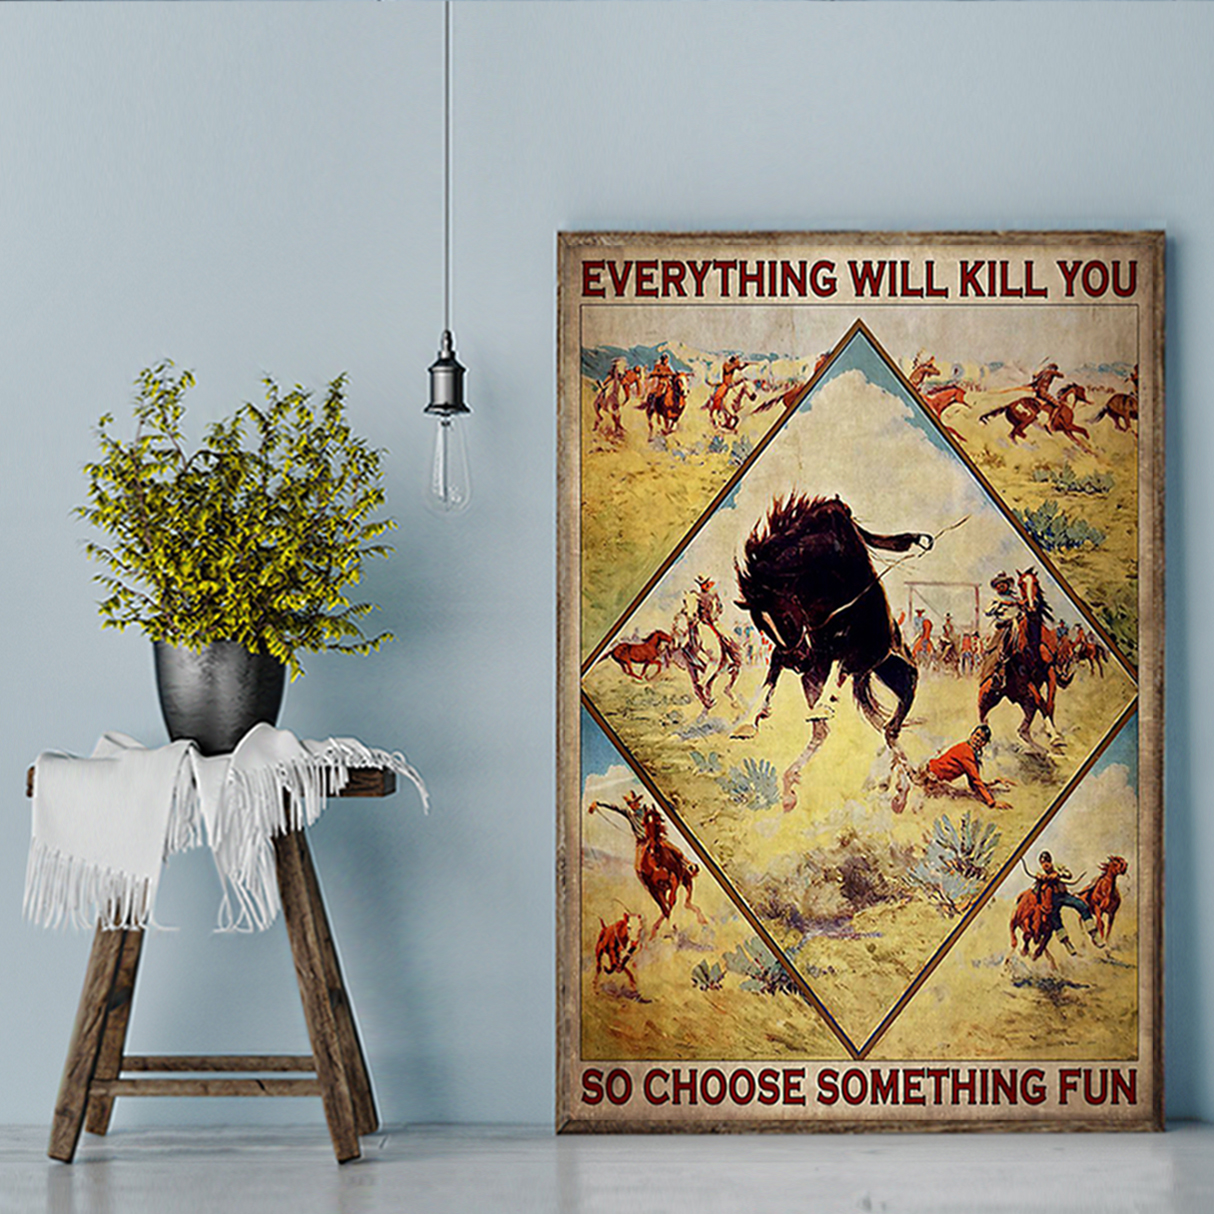 Cowboy rodeo everything will kill you so choose something fun poster A3